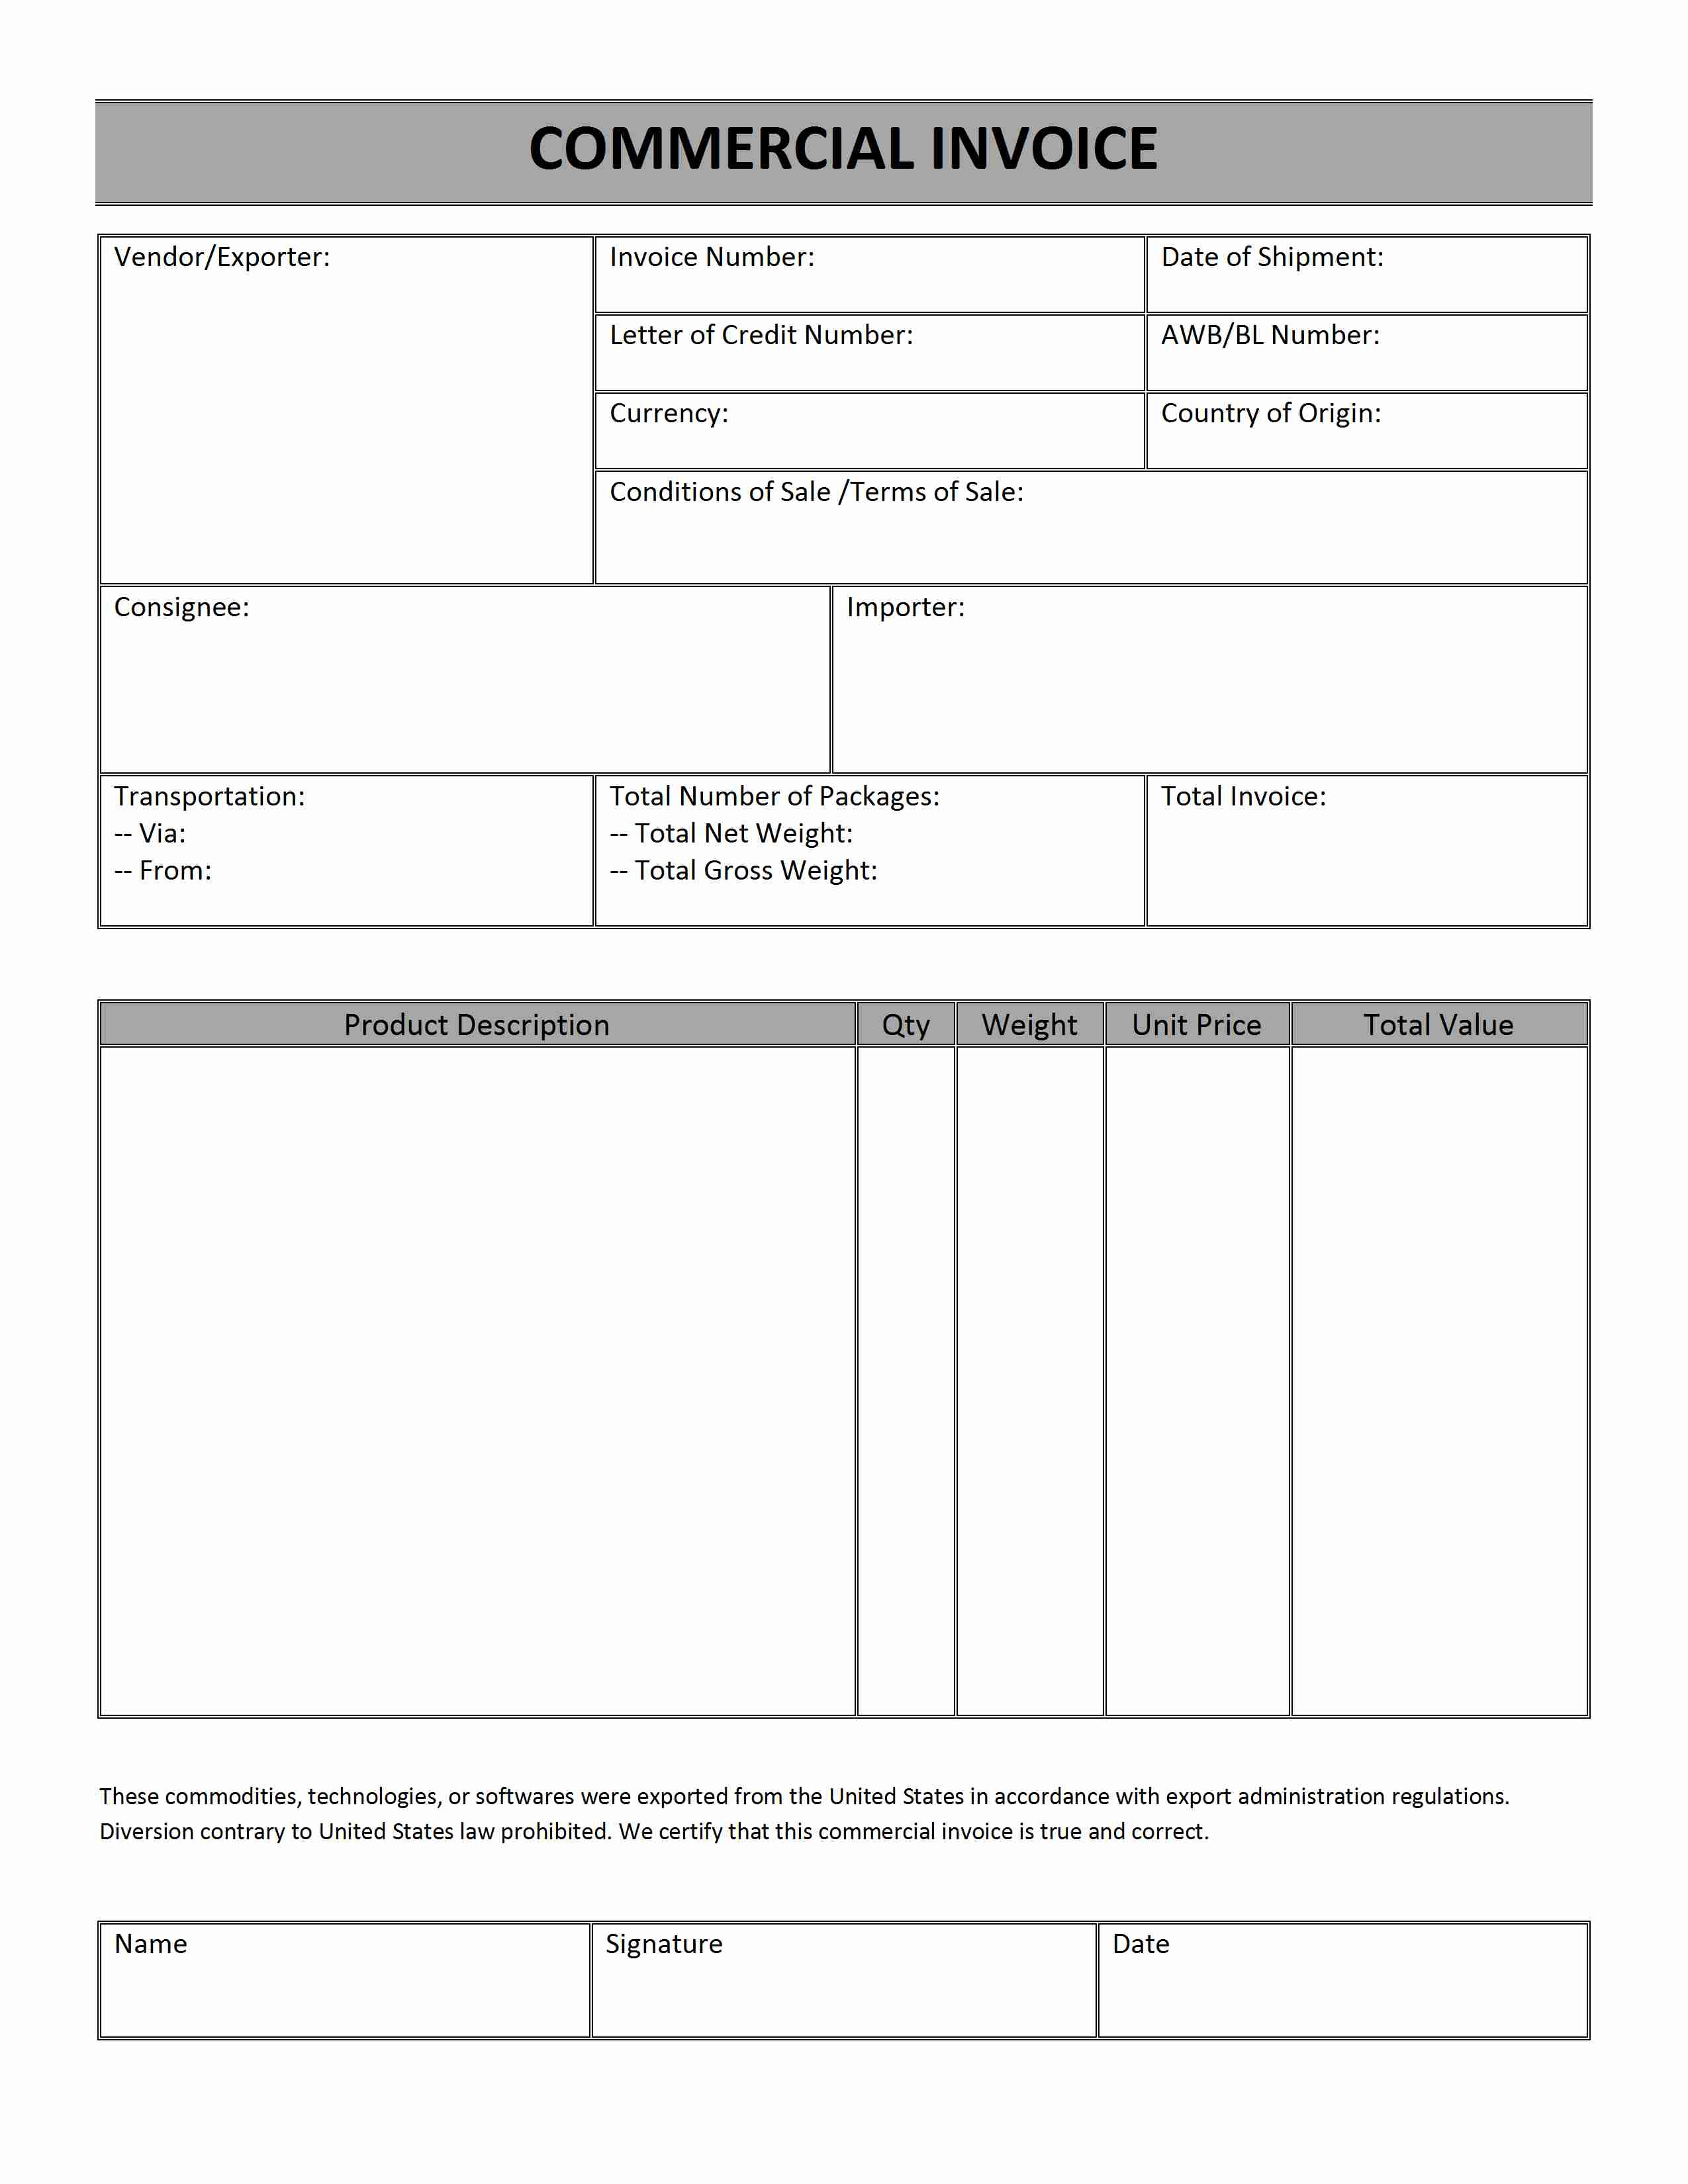 Sandiegolocksmithsus  Unusual Printable Sales Invoice Simple Invoice Form Free Invoice  With Goodlooking Printable Receipt Free  Free Printable Raffle Tickets  Receipt   Printable With Amazing Personal Receipt Template Also Fillable Receipt In Addition Money Receipts And Duplicate Receipt Book As Well As Printable Receipts Online Additionally Avis Get Receipt From Happytomco With Sandiegolocksmithsus  Goodlooking Printable Sales Invoice Simple Invoice Form Free Invoice  With Amazing Printable Receipt Free  Free Printable Raffle Tickets  Receipt   Printable And Unusual Personal Receipt Template Also Fillable Receipt In Addition Money Receipts From Happytomco